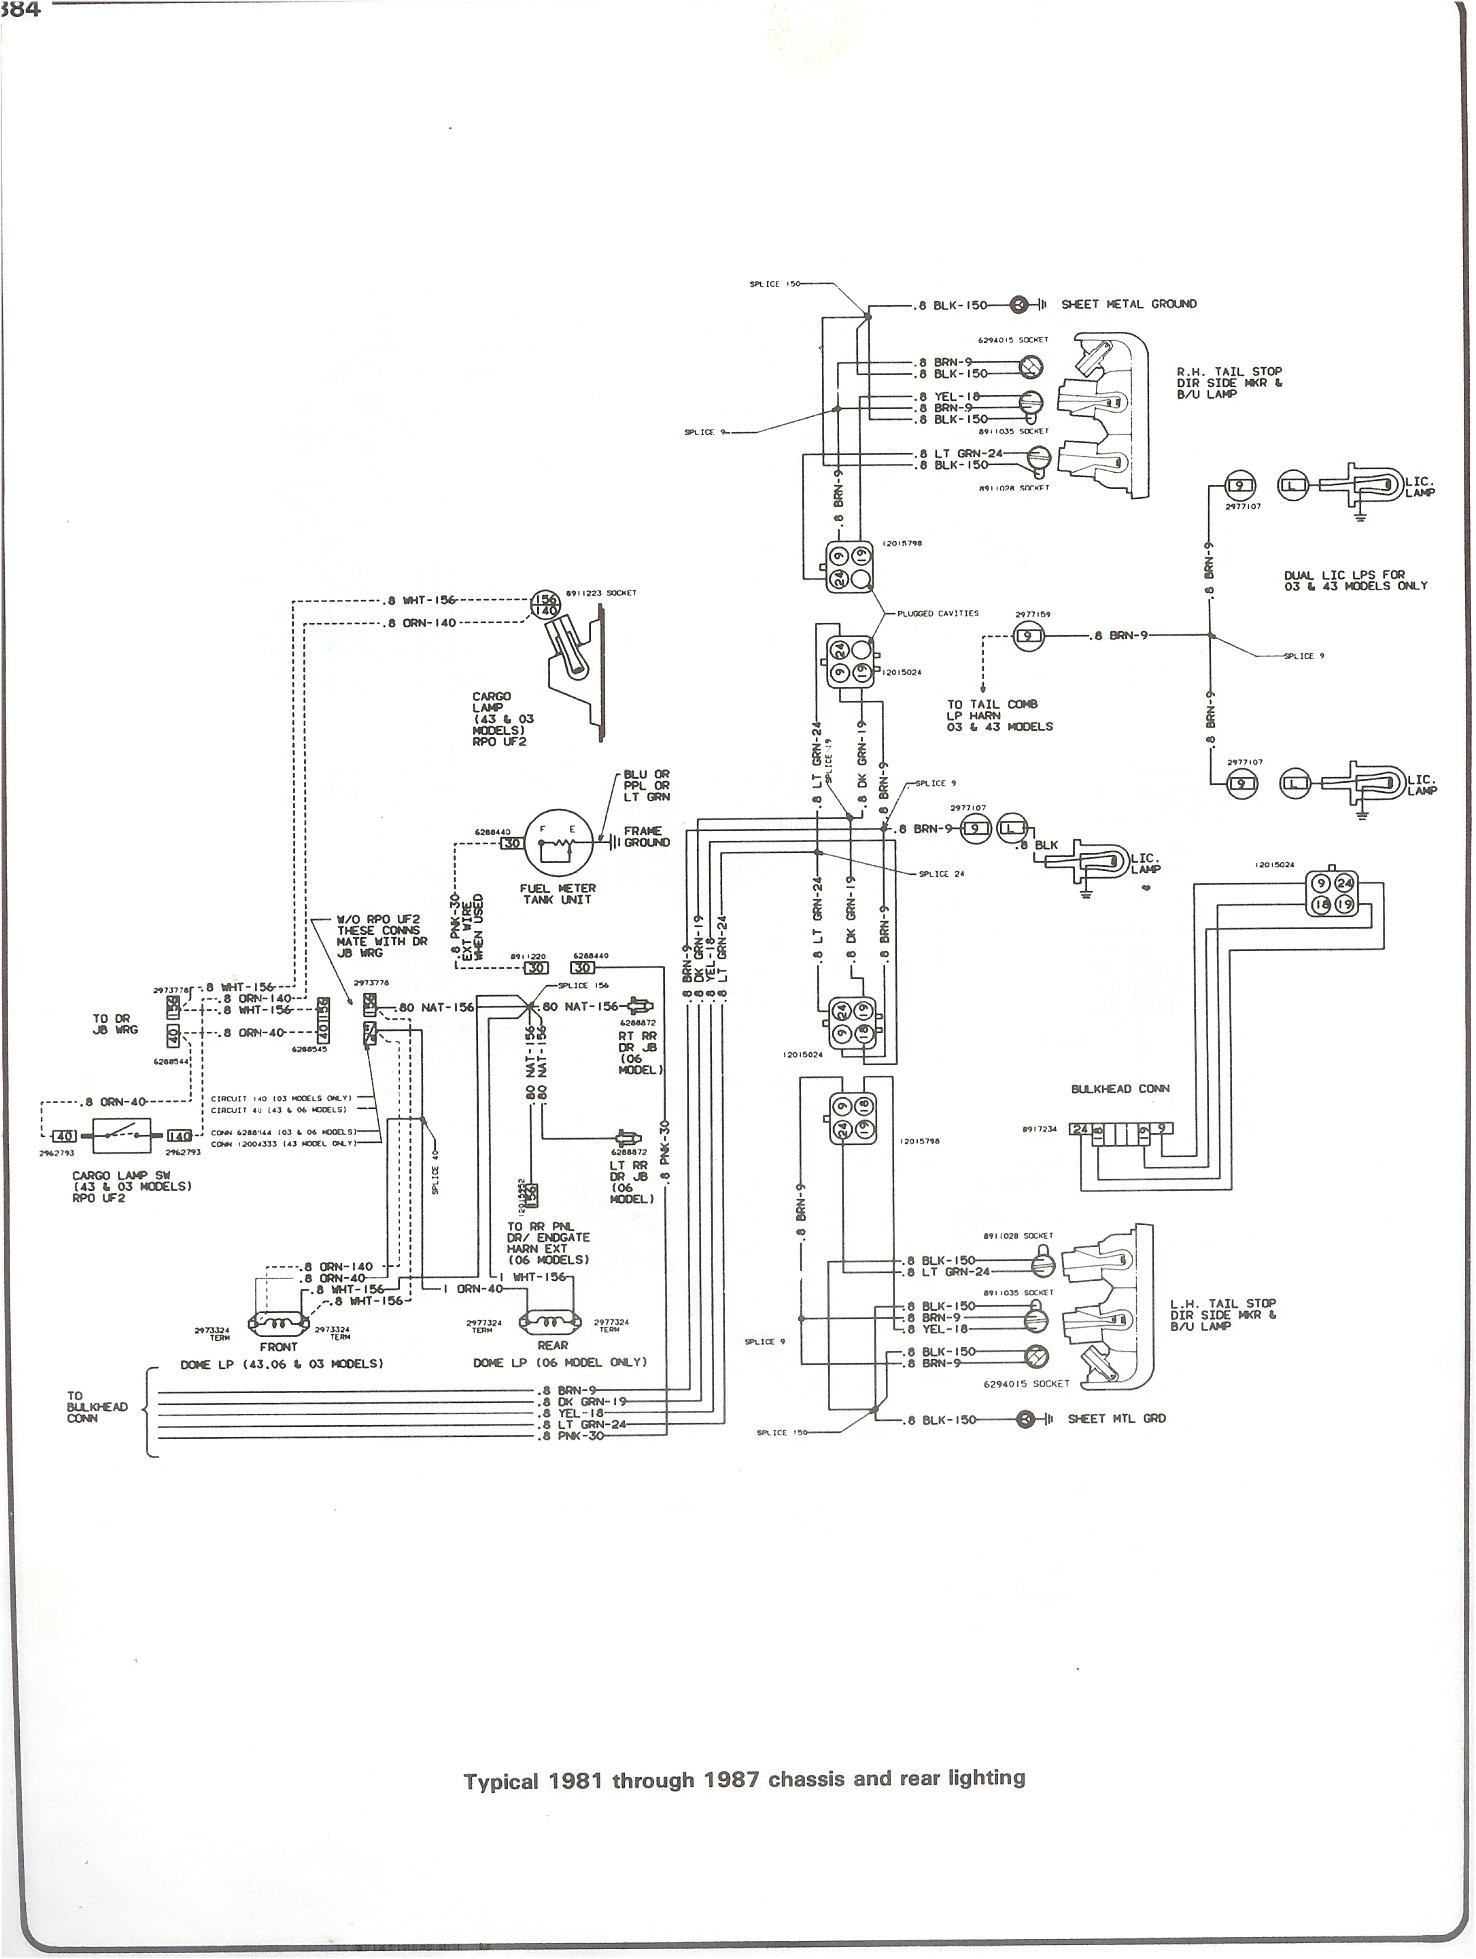 Mitsubishi Galant Engine Diagram Electrical 2003 Wiring 87 Chevy In Addition Fuse Box Of